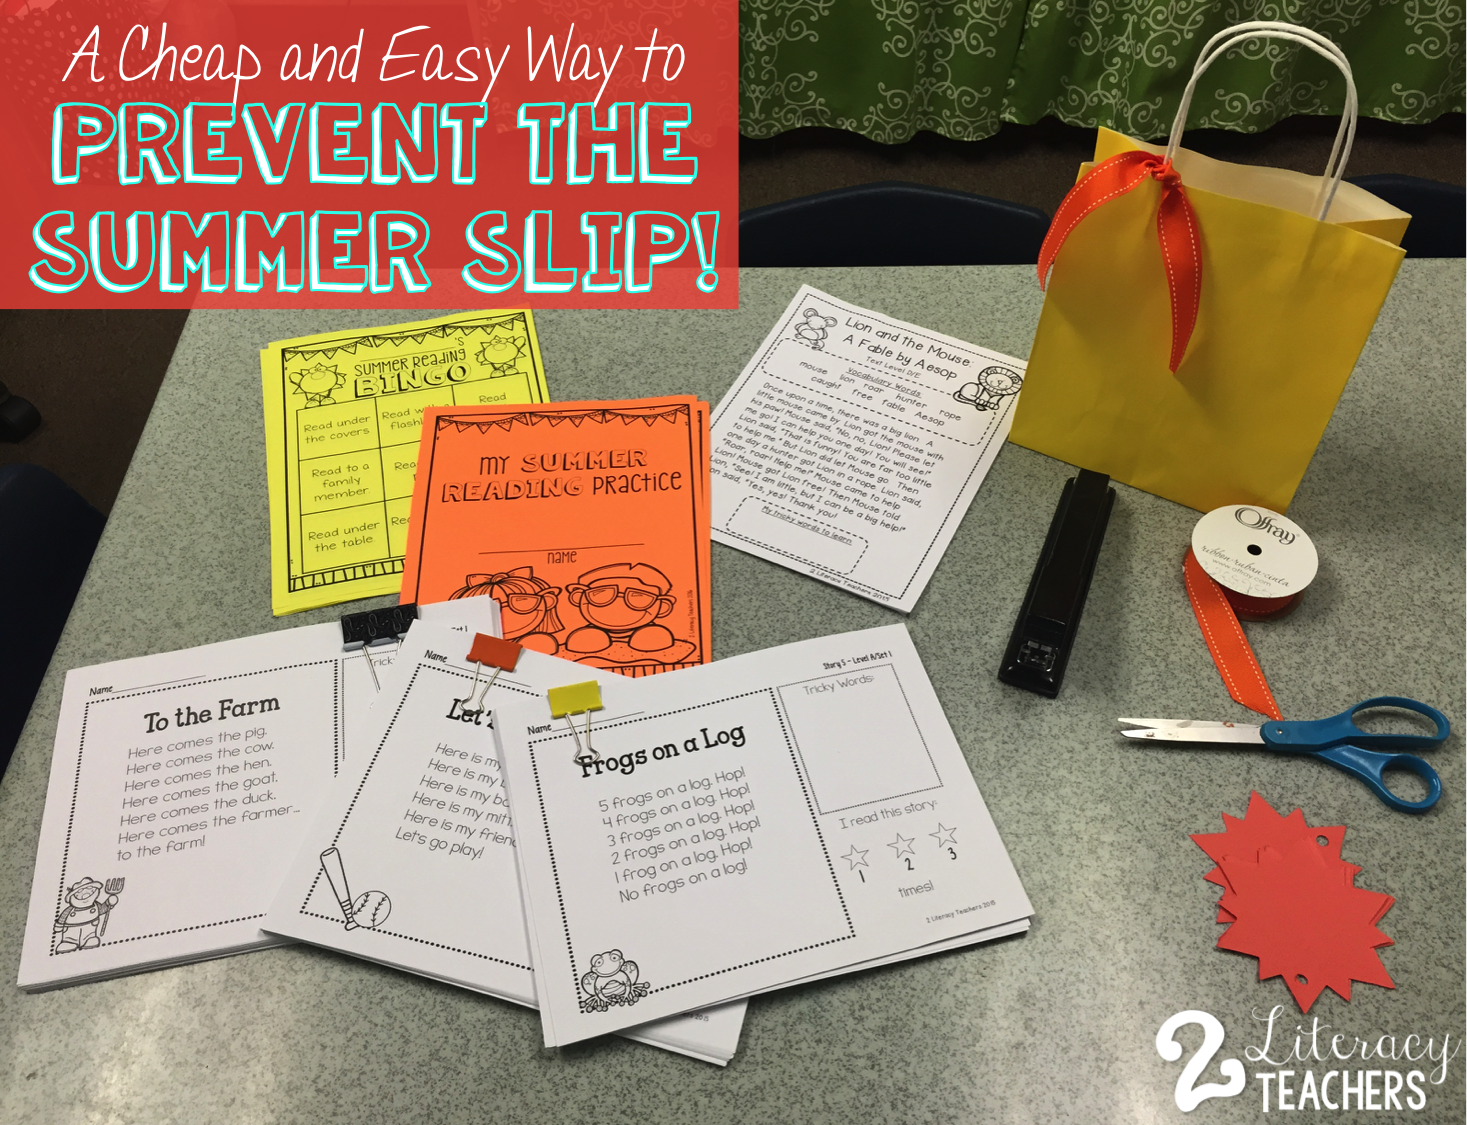 Tuesday's Tip – An Easy and Cheap Way to Prevent Summer Slide and a FREEBIE!